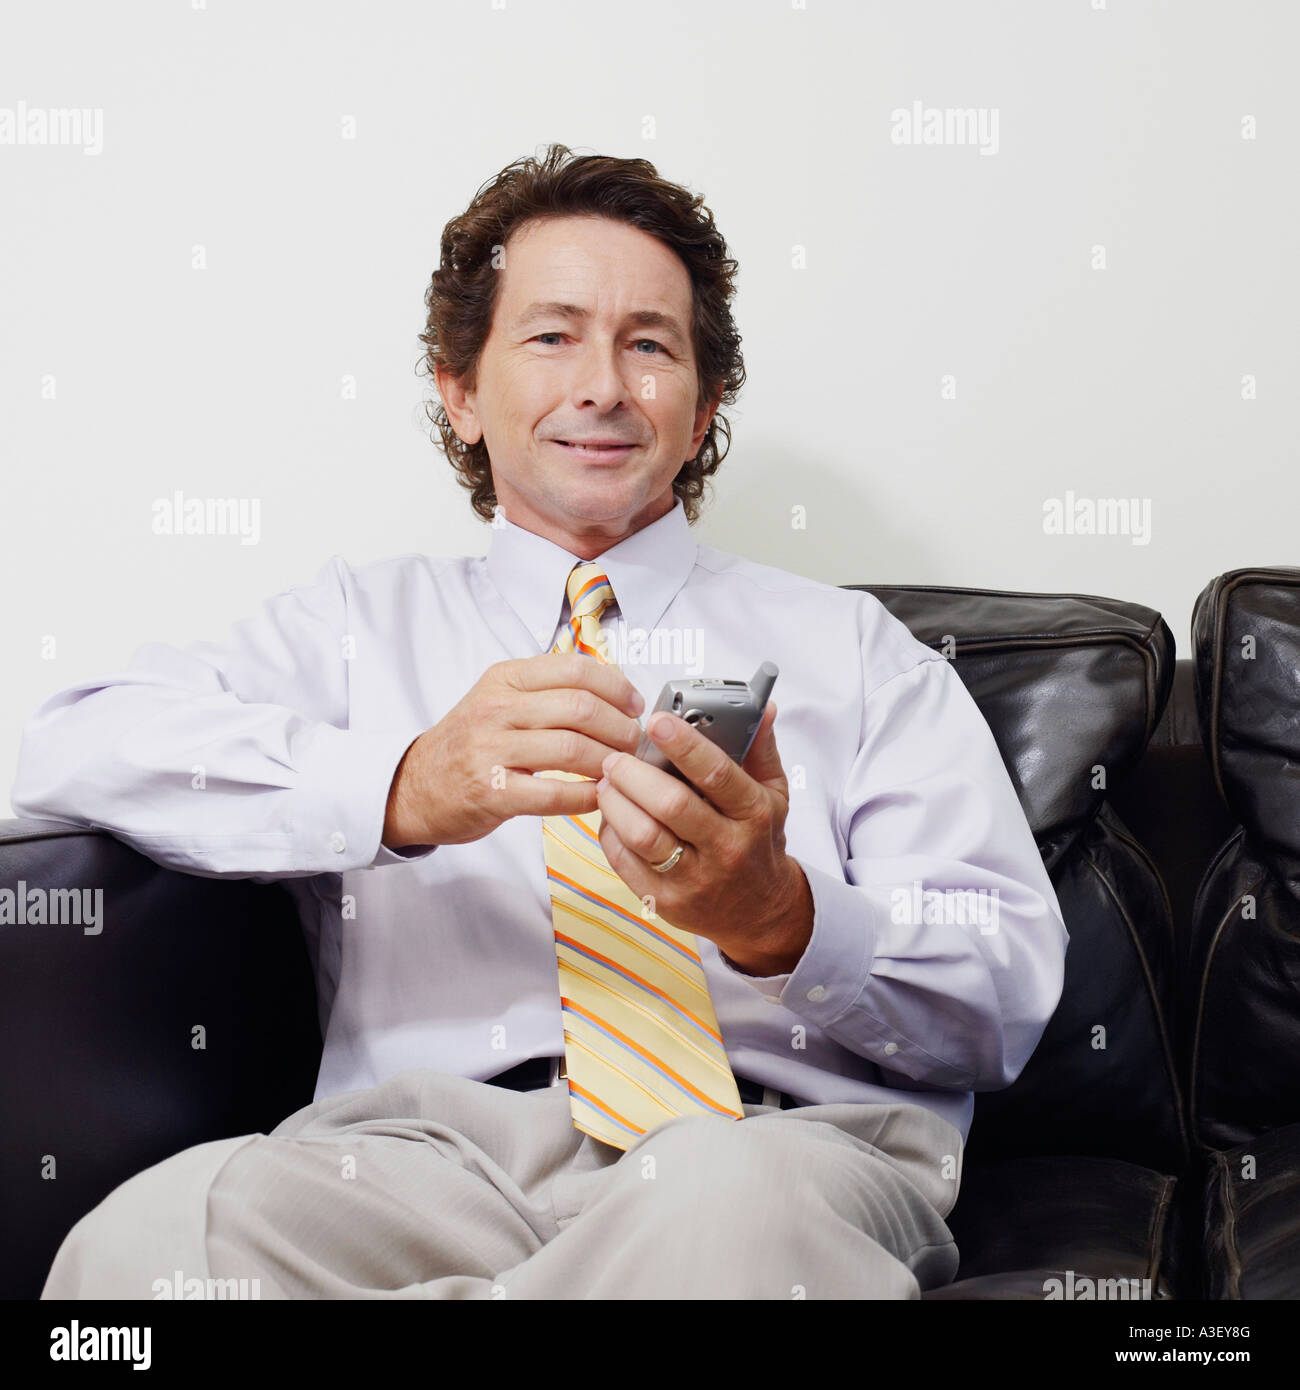 Portrait of a businessman sitting on a couch and holding a mobile phone - Stock Image